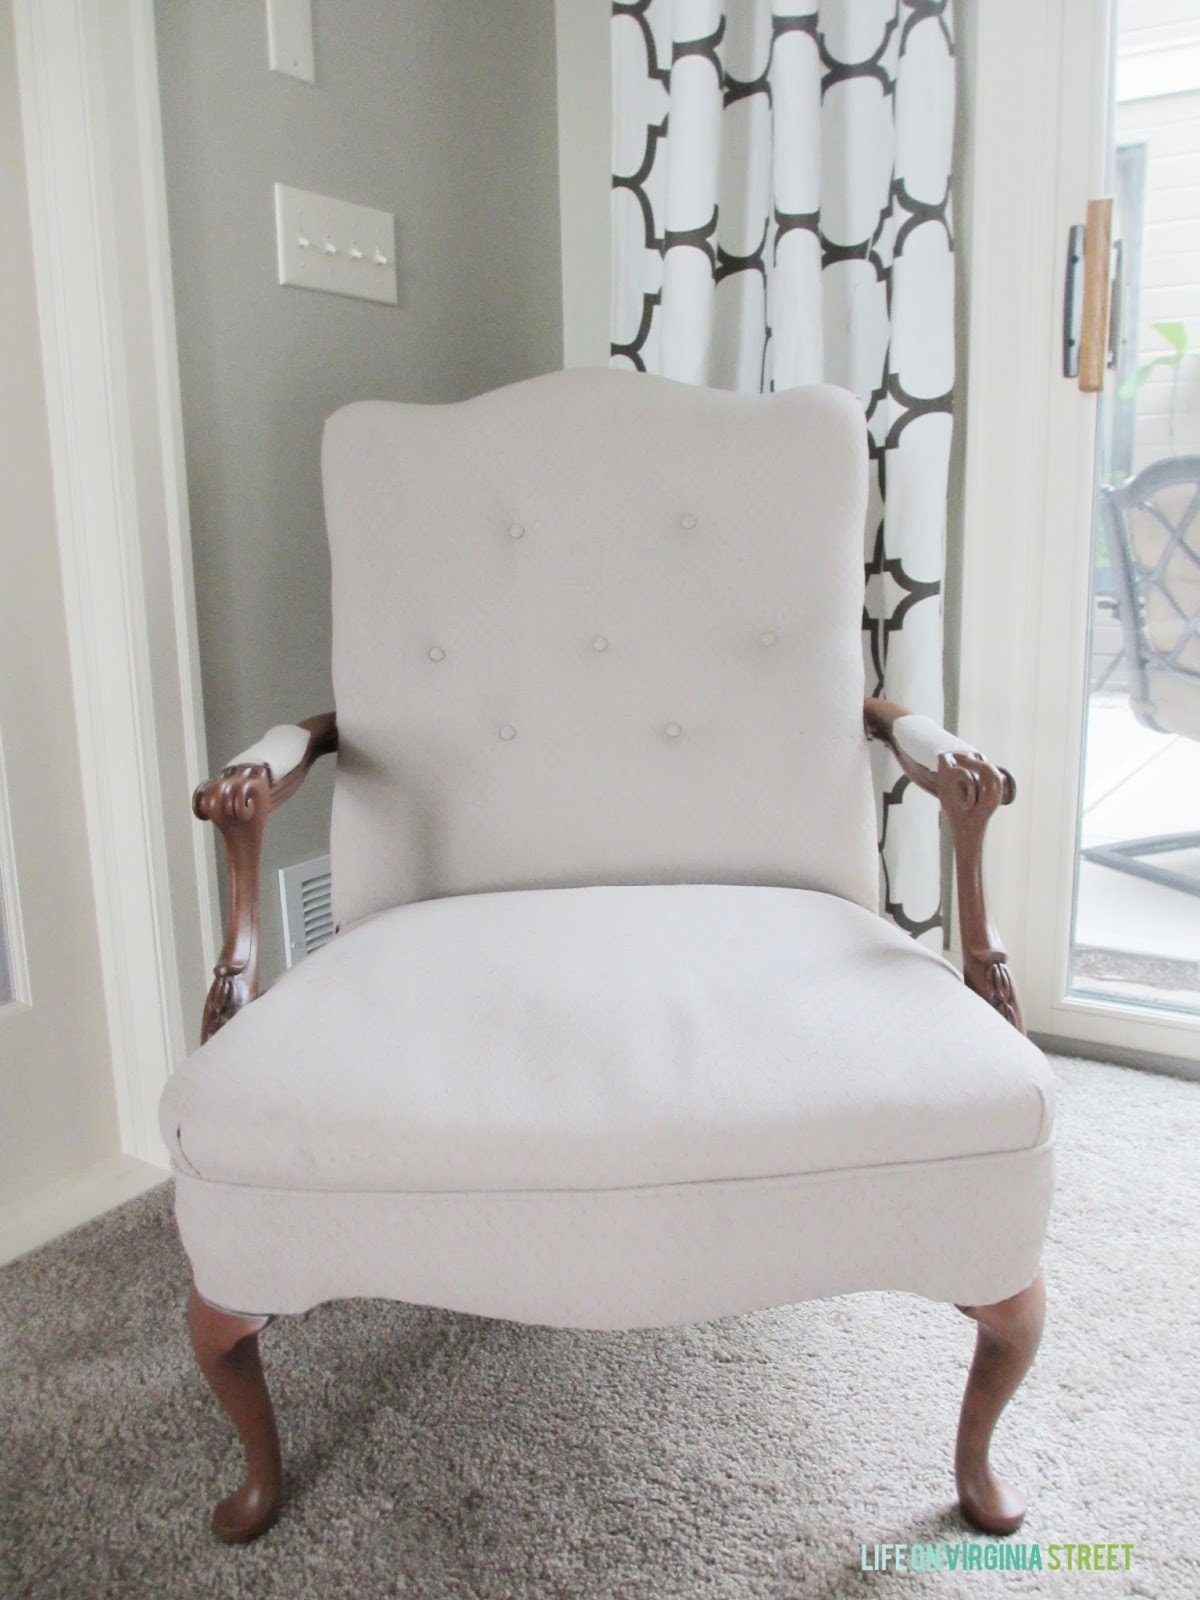 Painted Fabric and Wood Chair. I had no idea painted fabric could look this beautiful!